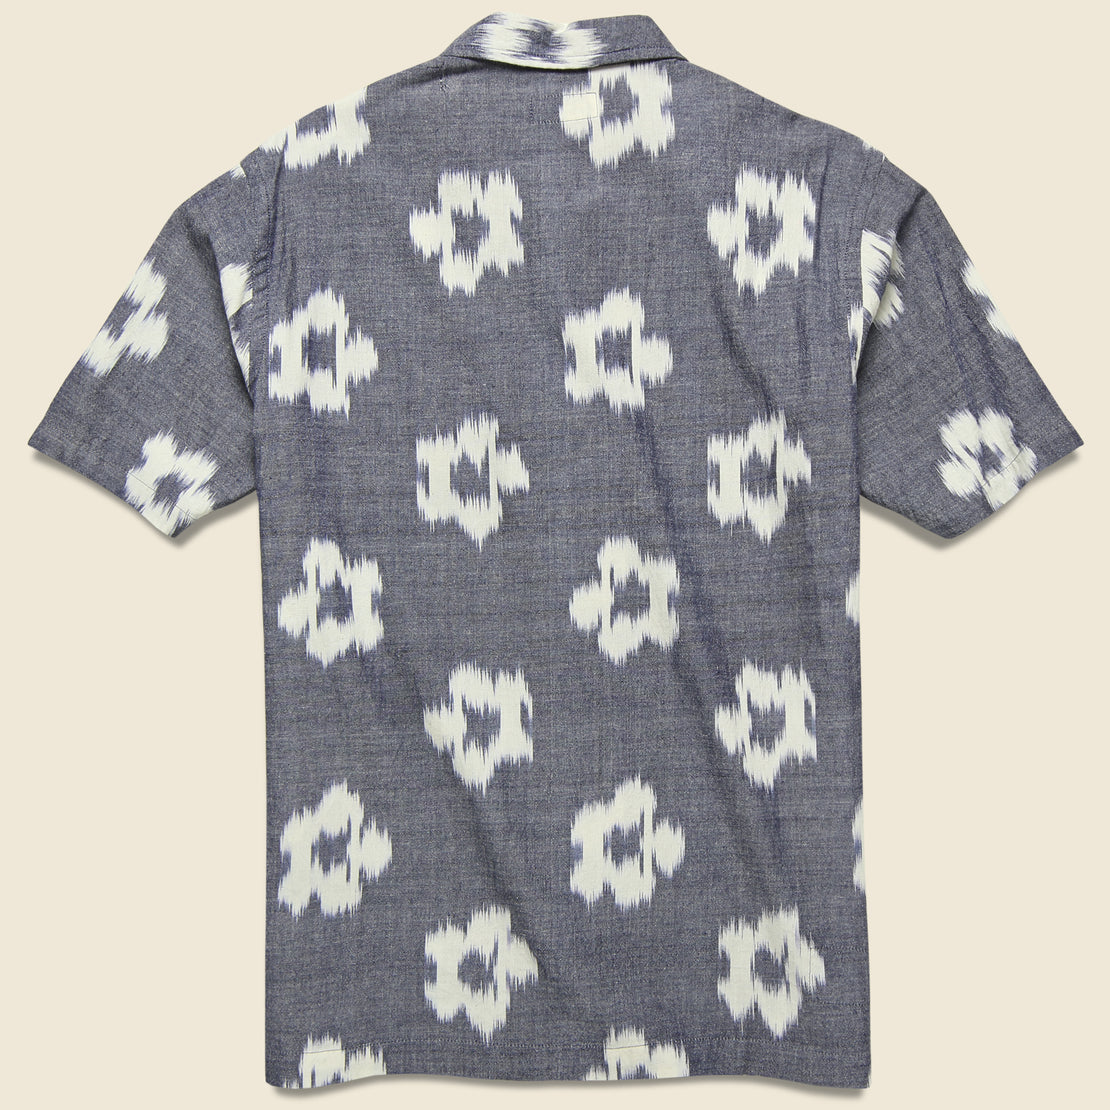 Road Shirt - Grey Ikat Flower